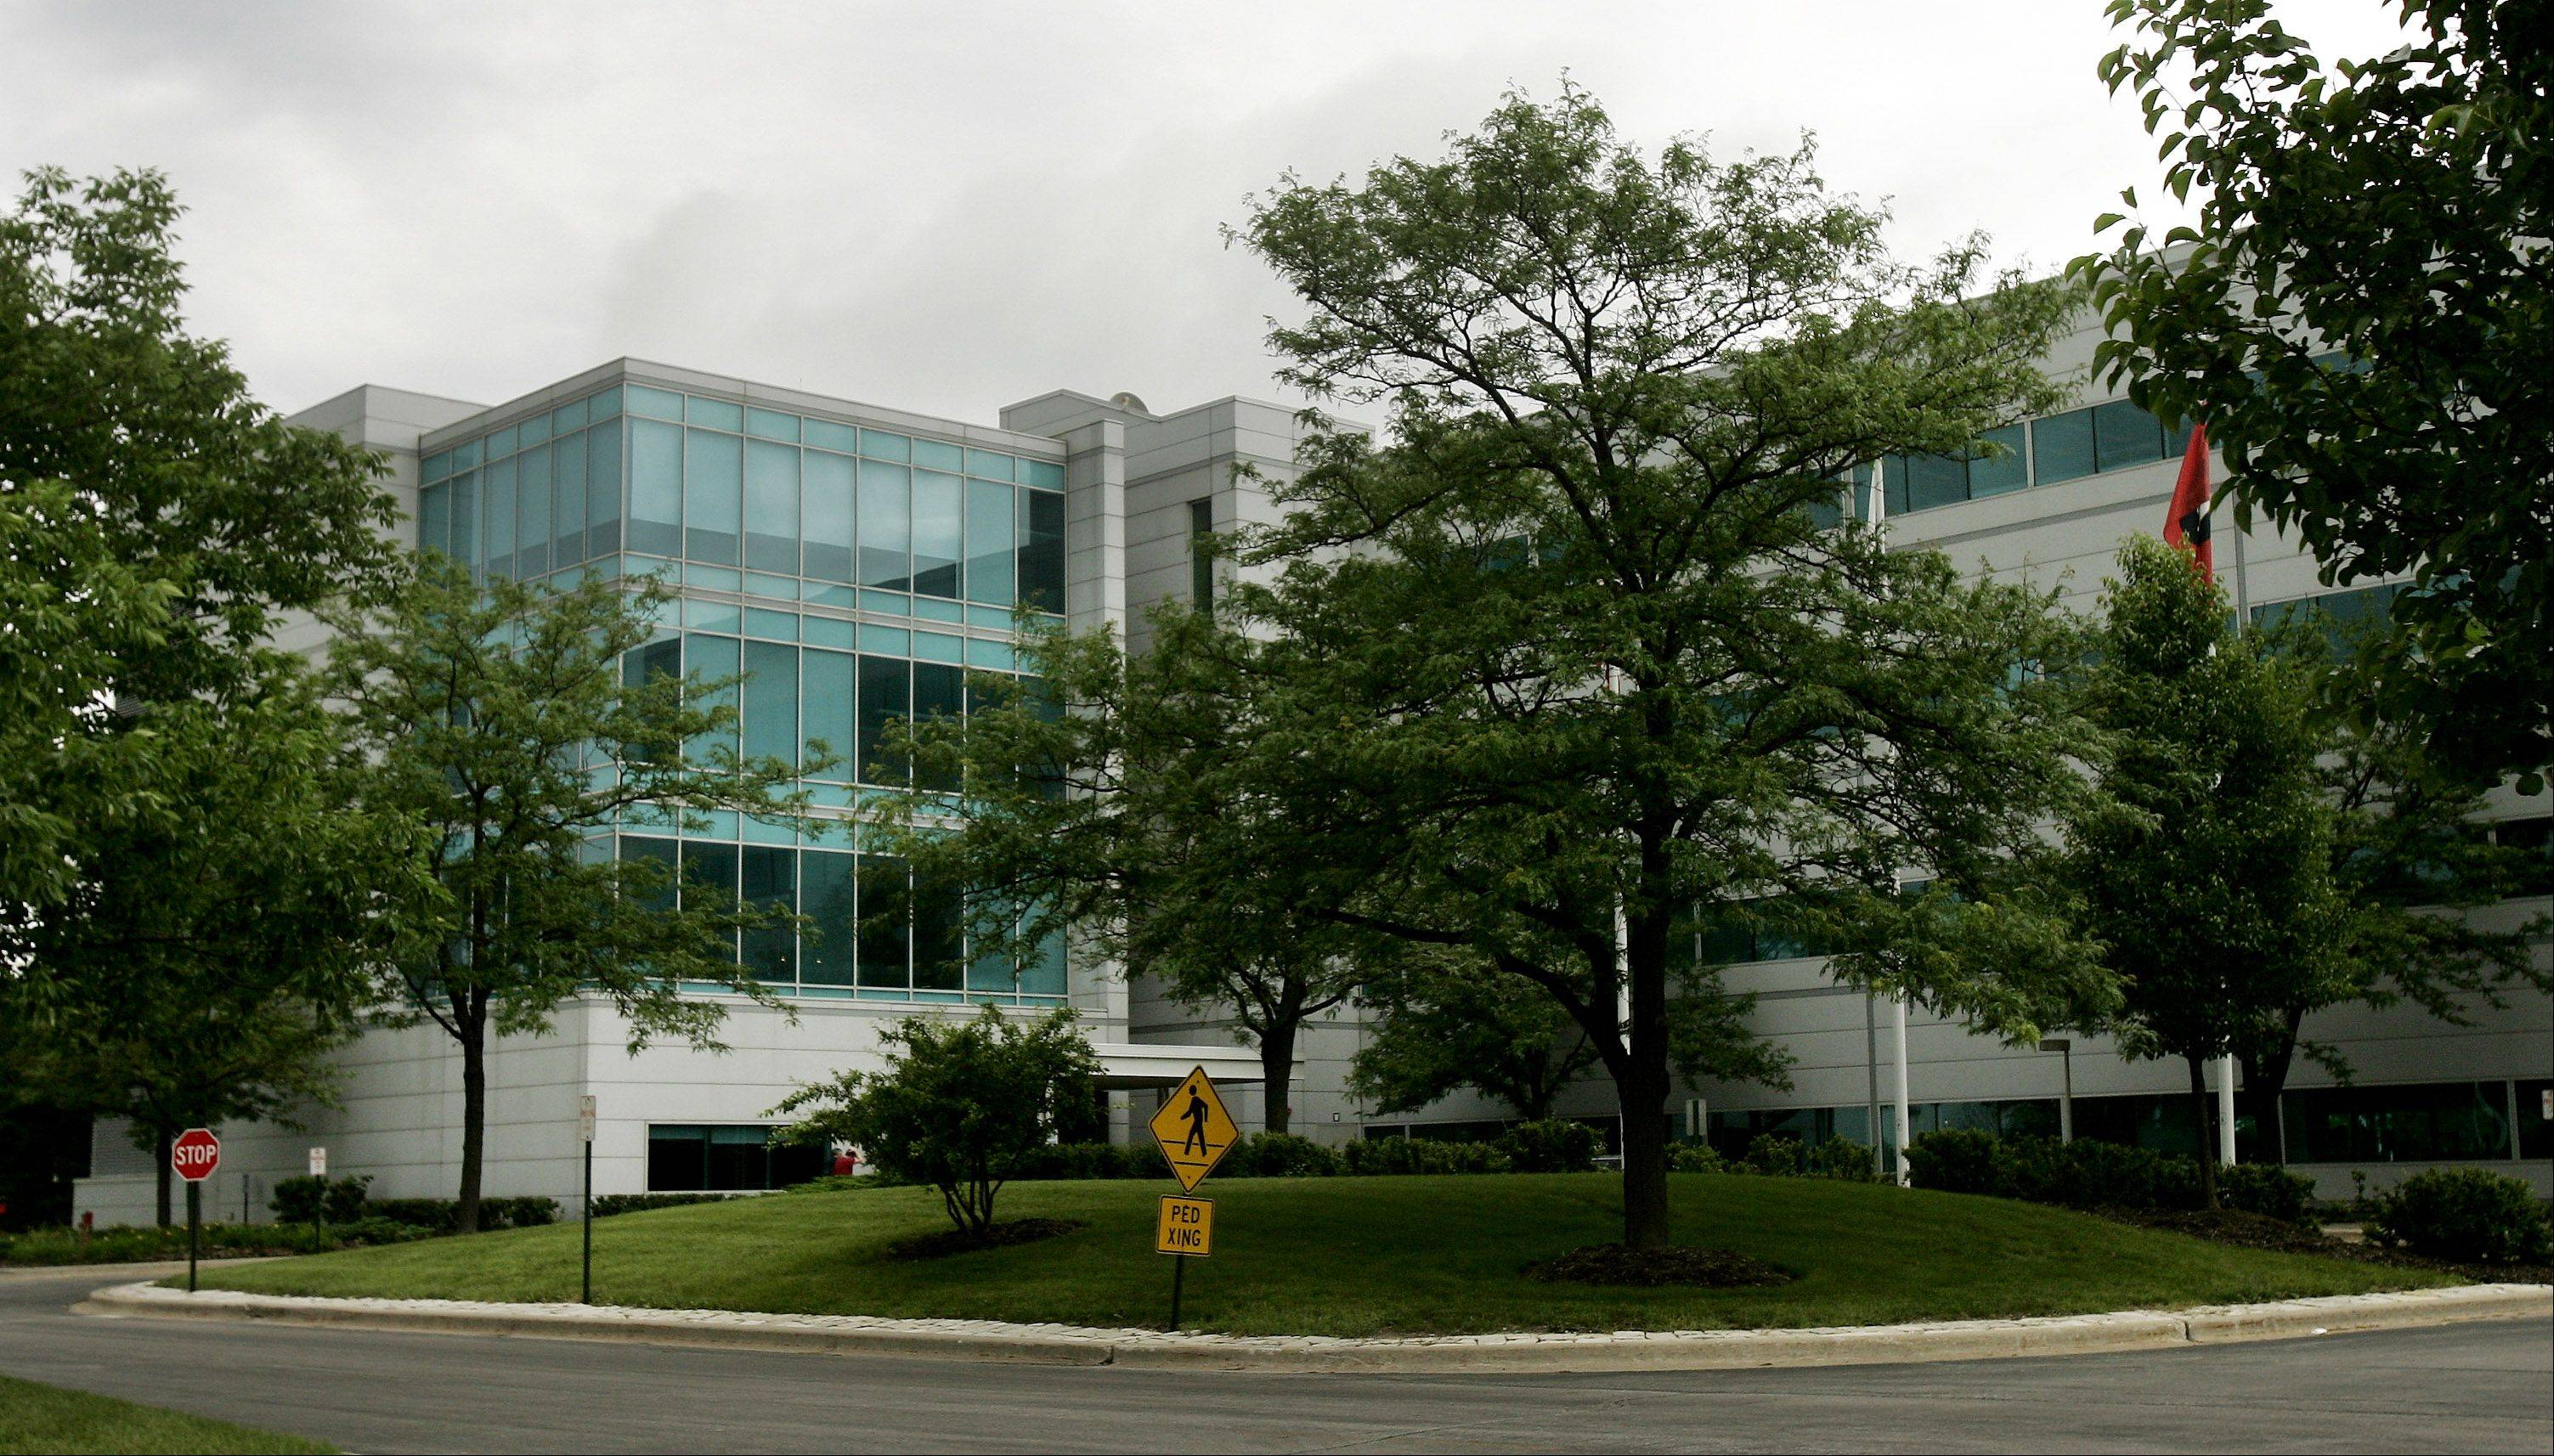 The Motorola Mobility campus in Libertyville is on the market after the company's recent move to the Merchandise Mart in Chicago.